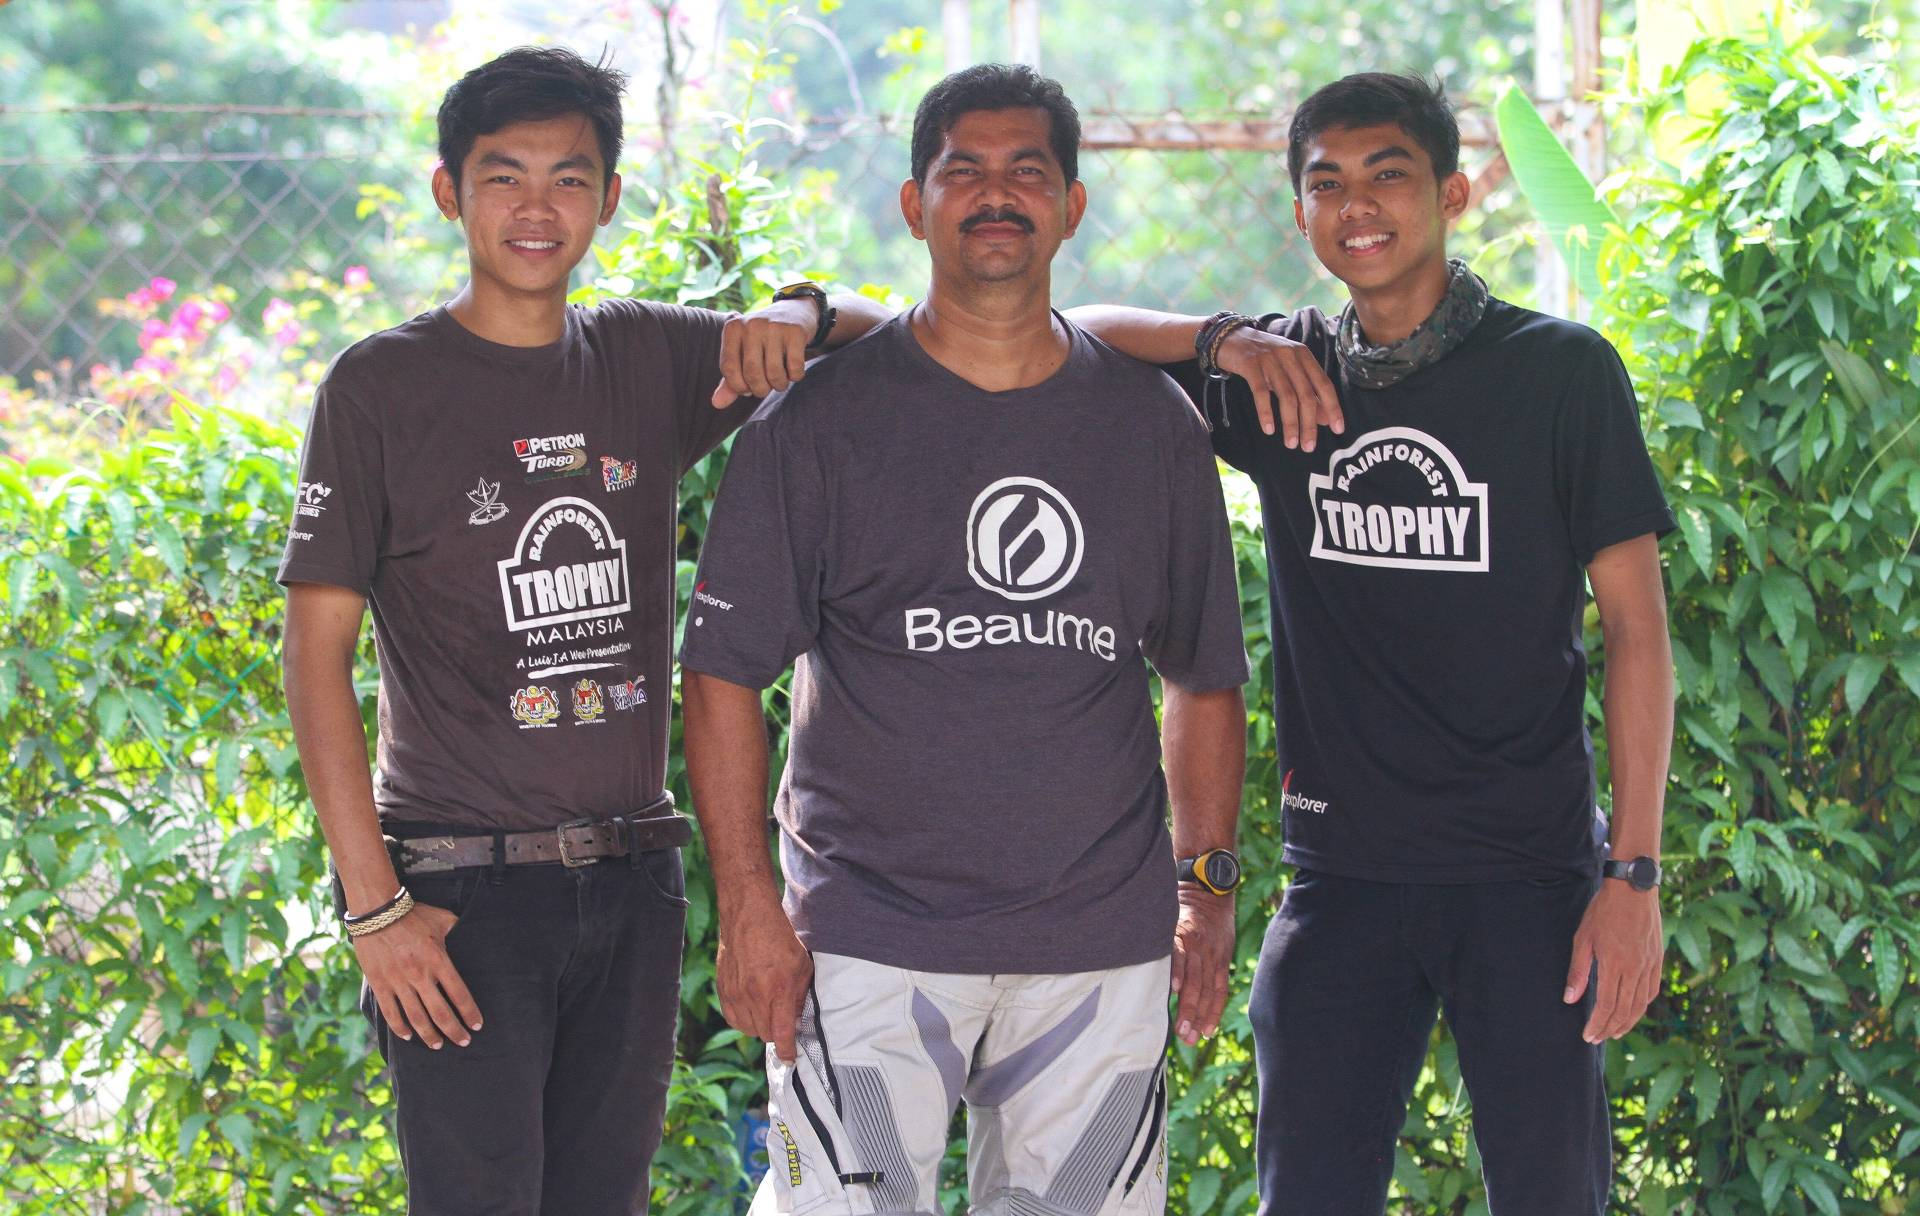 Satren (left) and Kevan (right) who are champions  of Rainforest Trophy 2019, a 4WD event, with their father, Rate De Silva, who also took part in the event. - MUHAMAD SHAHRIL ROSLI/The Star.